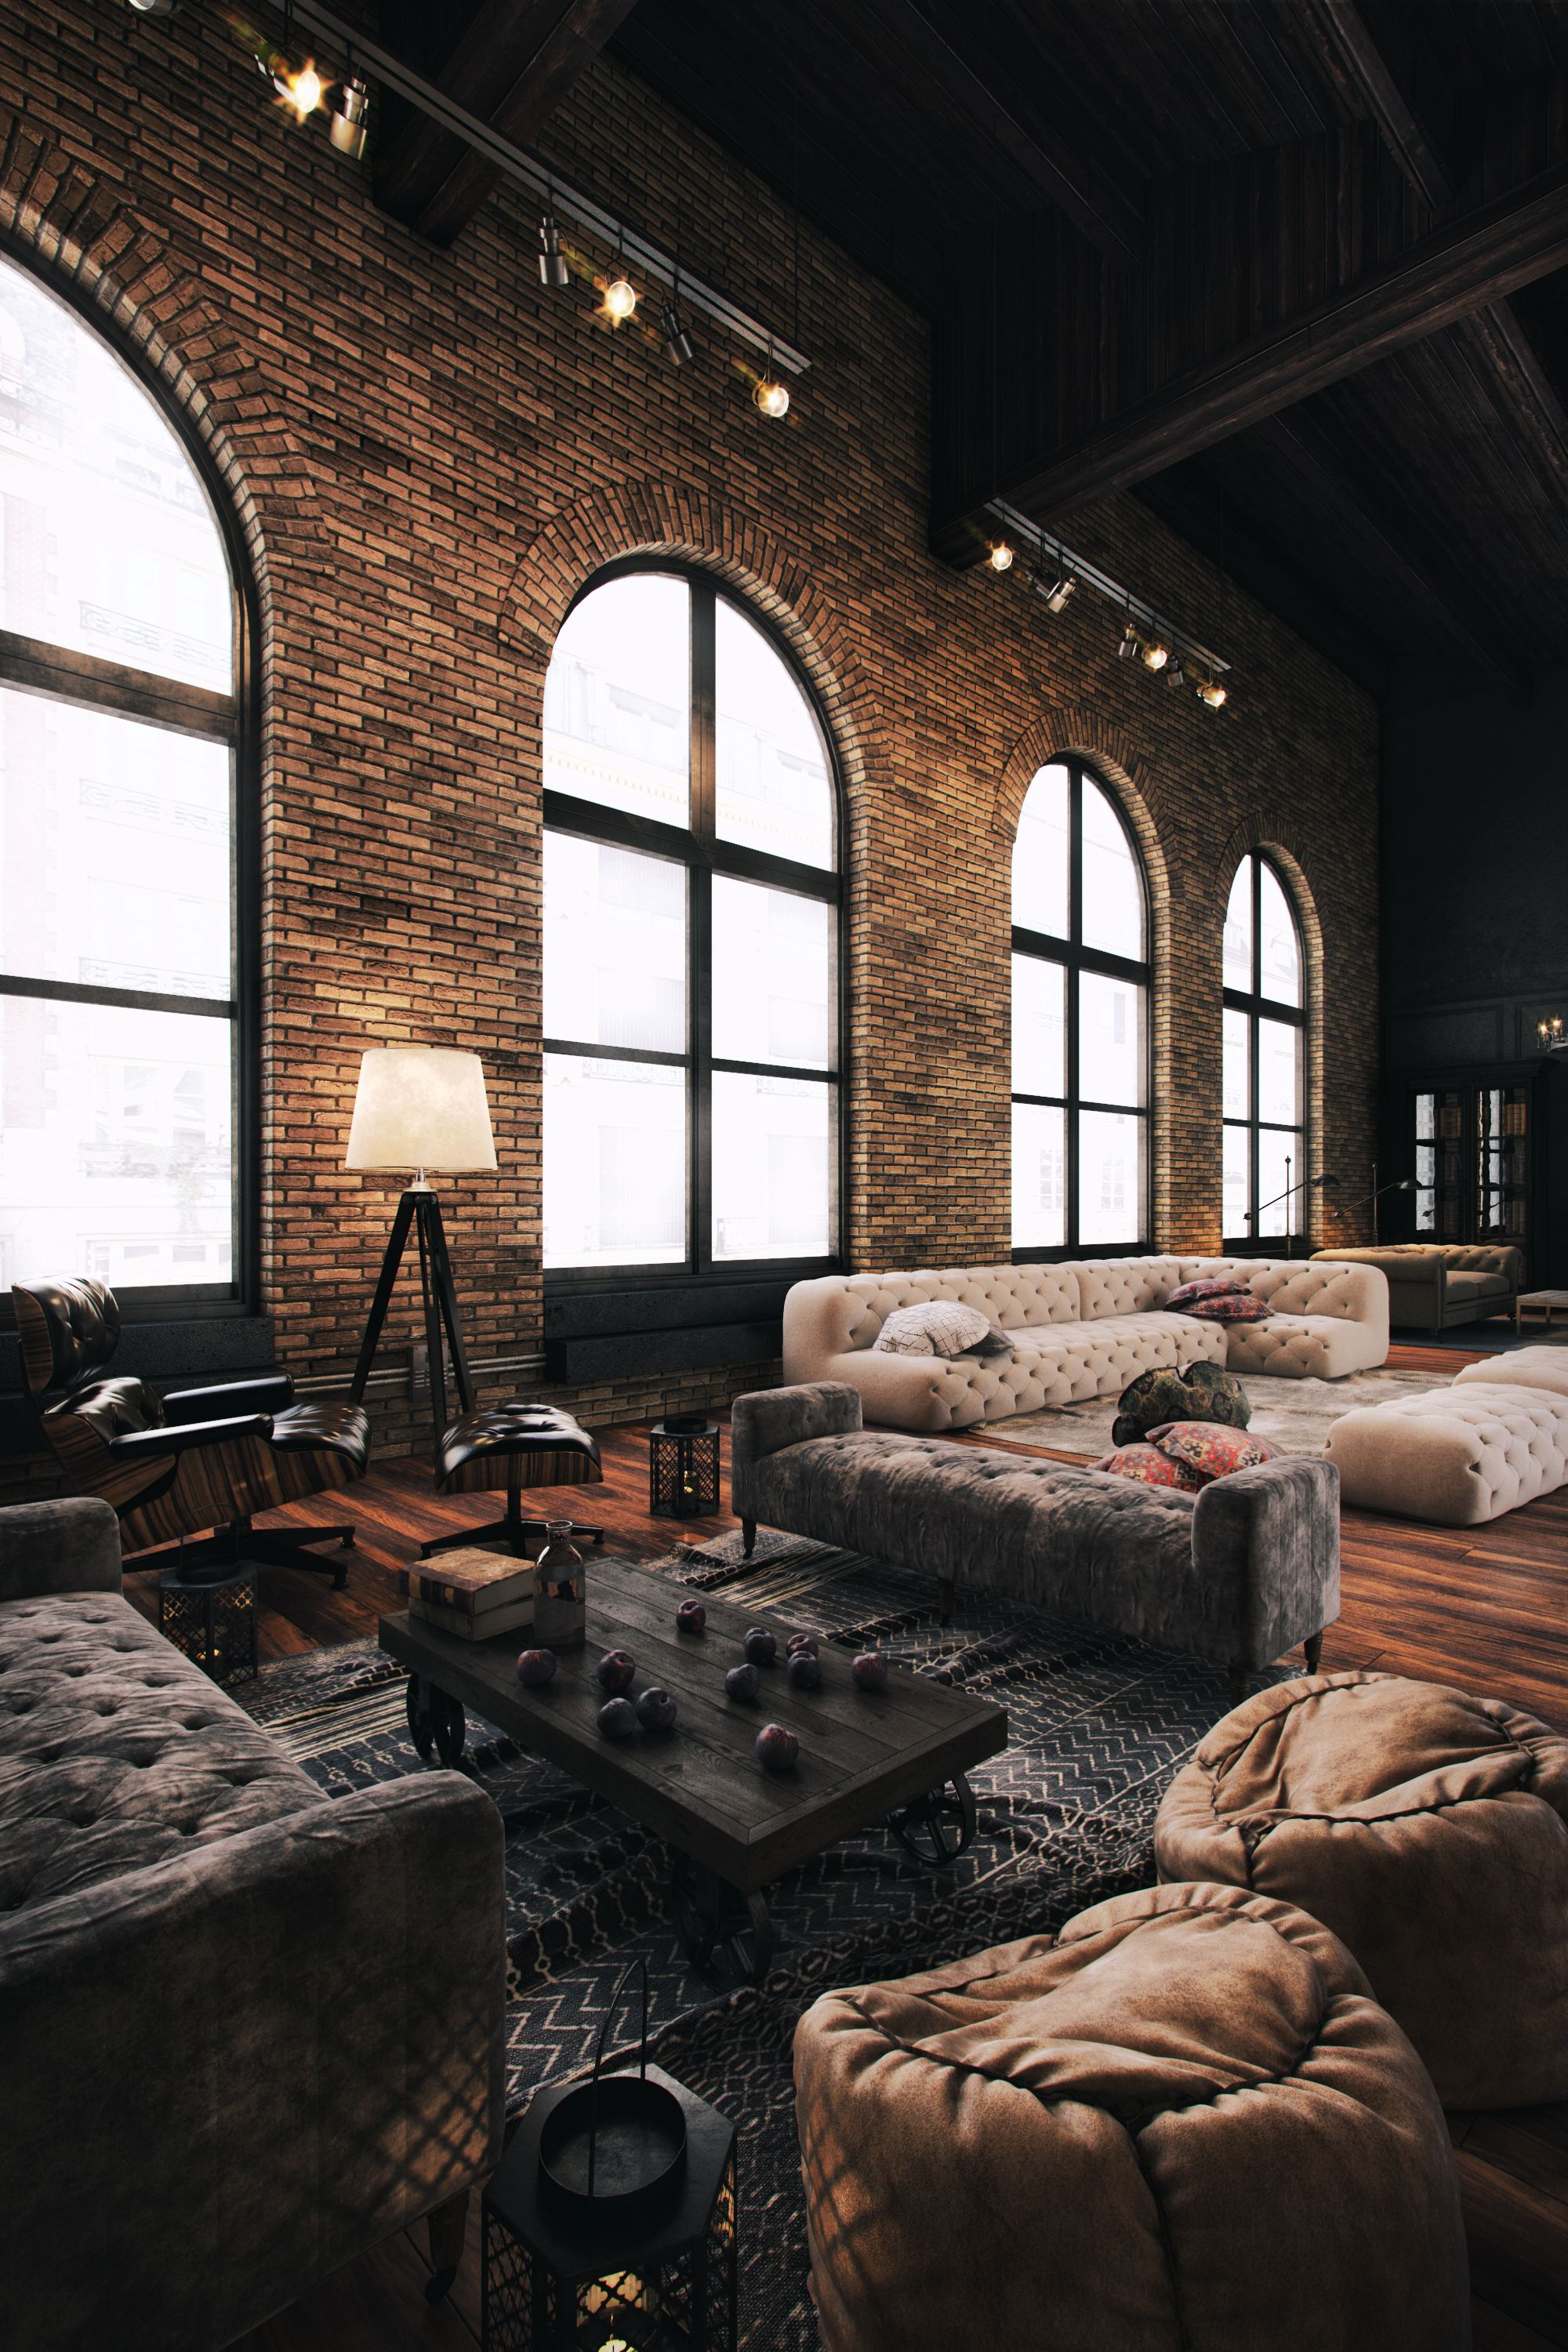 The Loft | Lofty Goals | Pinterest | Loft, House design and Home